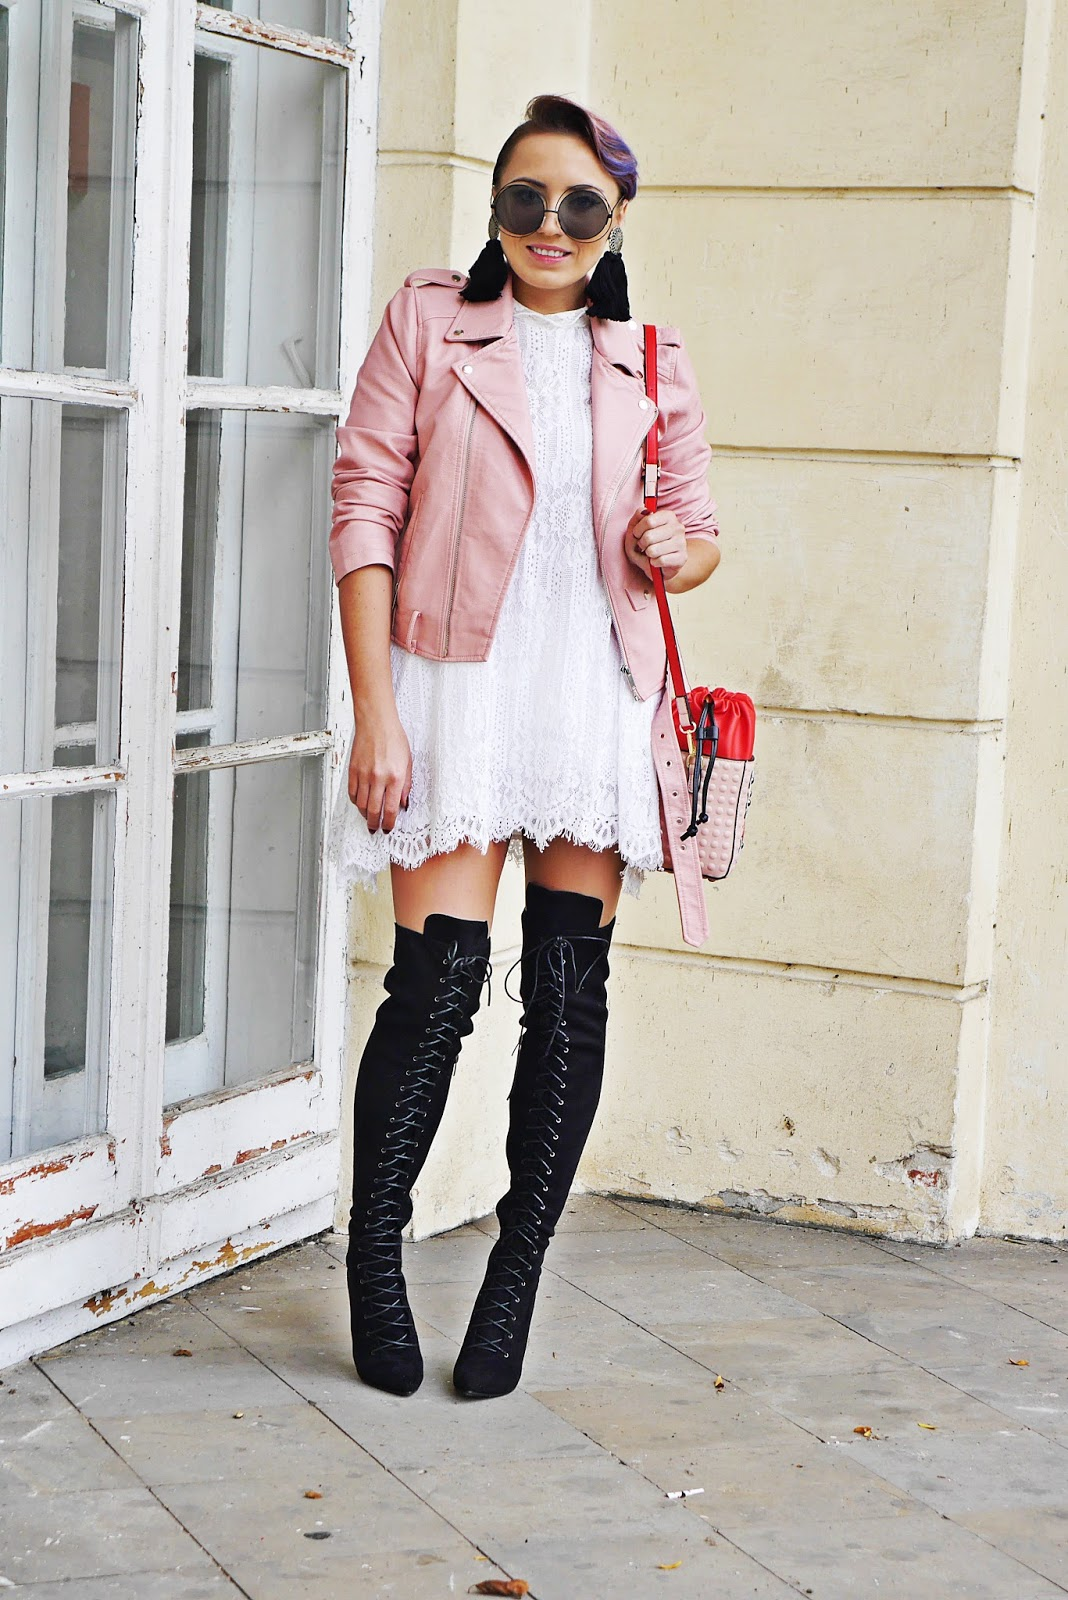 5_pink_biker_jacket_high_knee_shoes_renee_karyn_blog_modowy_lace_dress_180917a